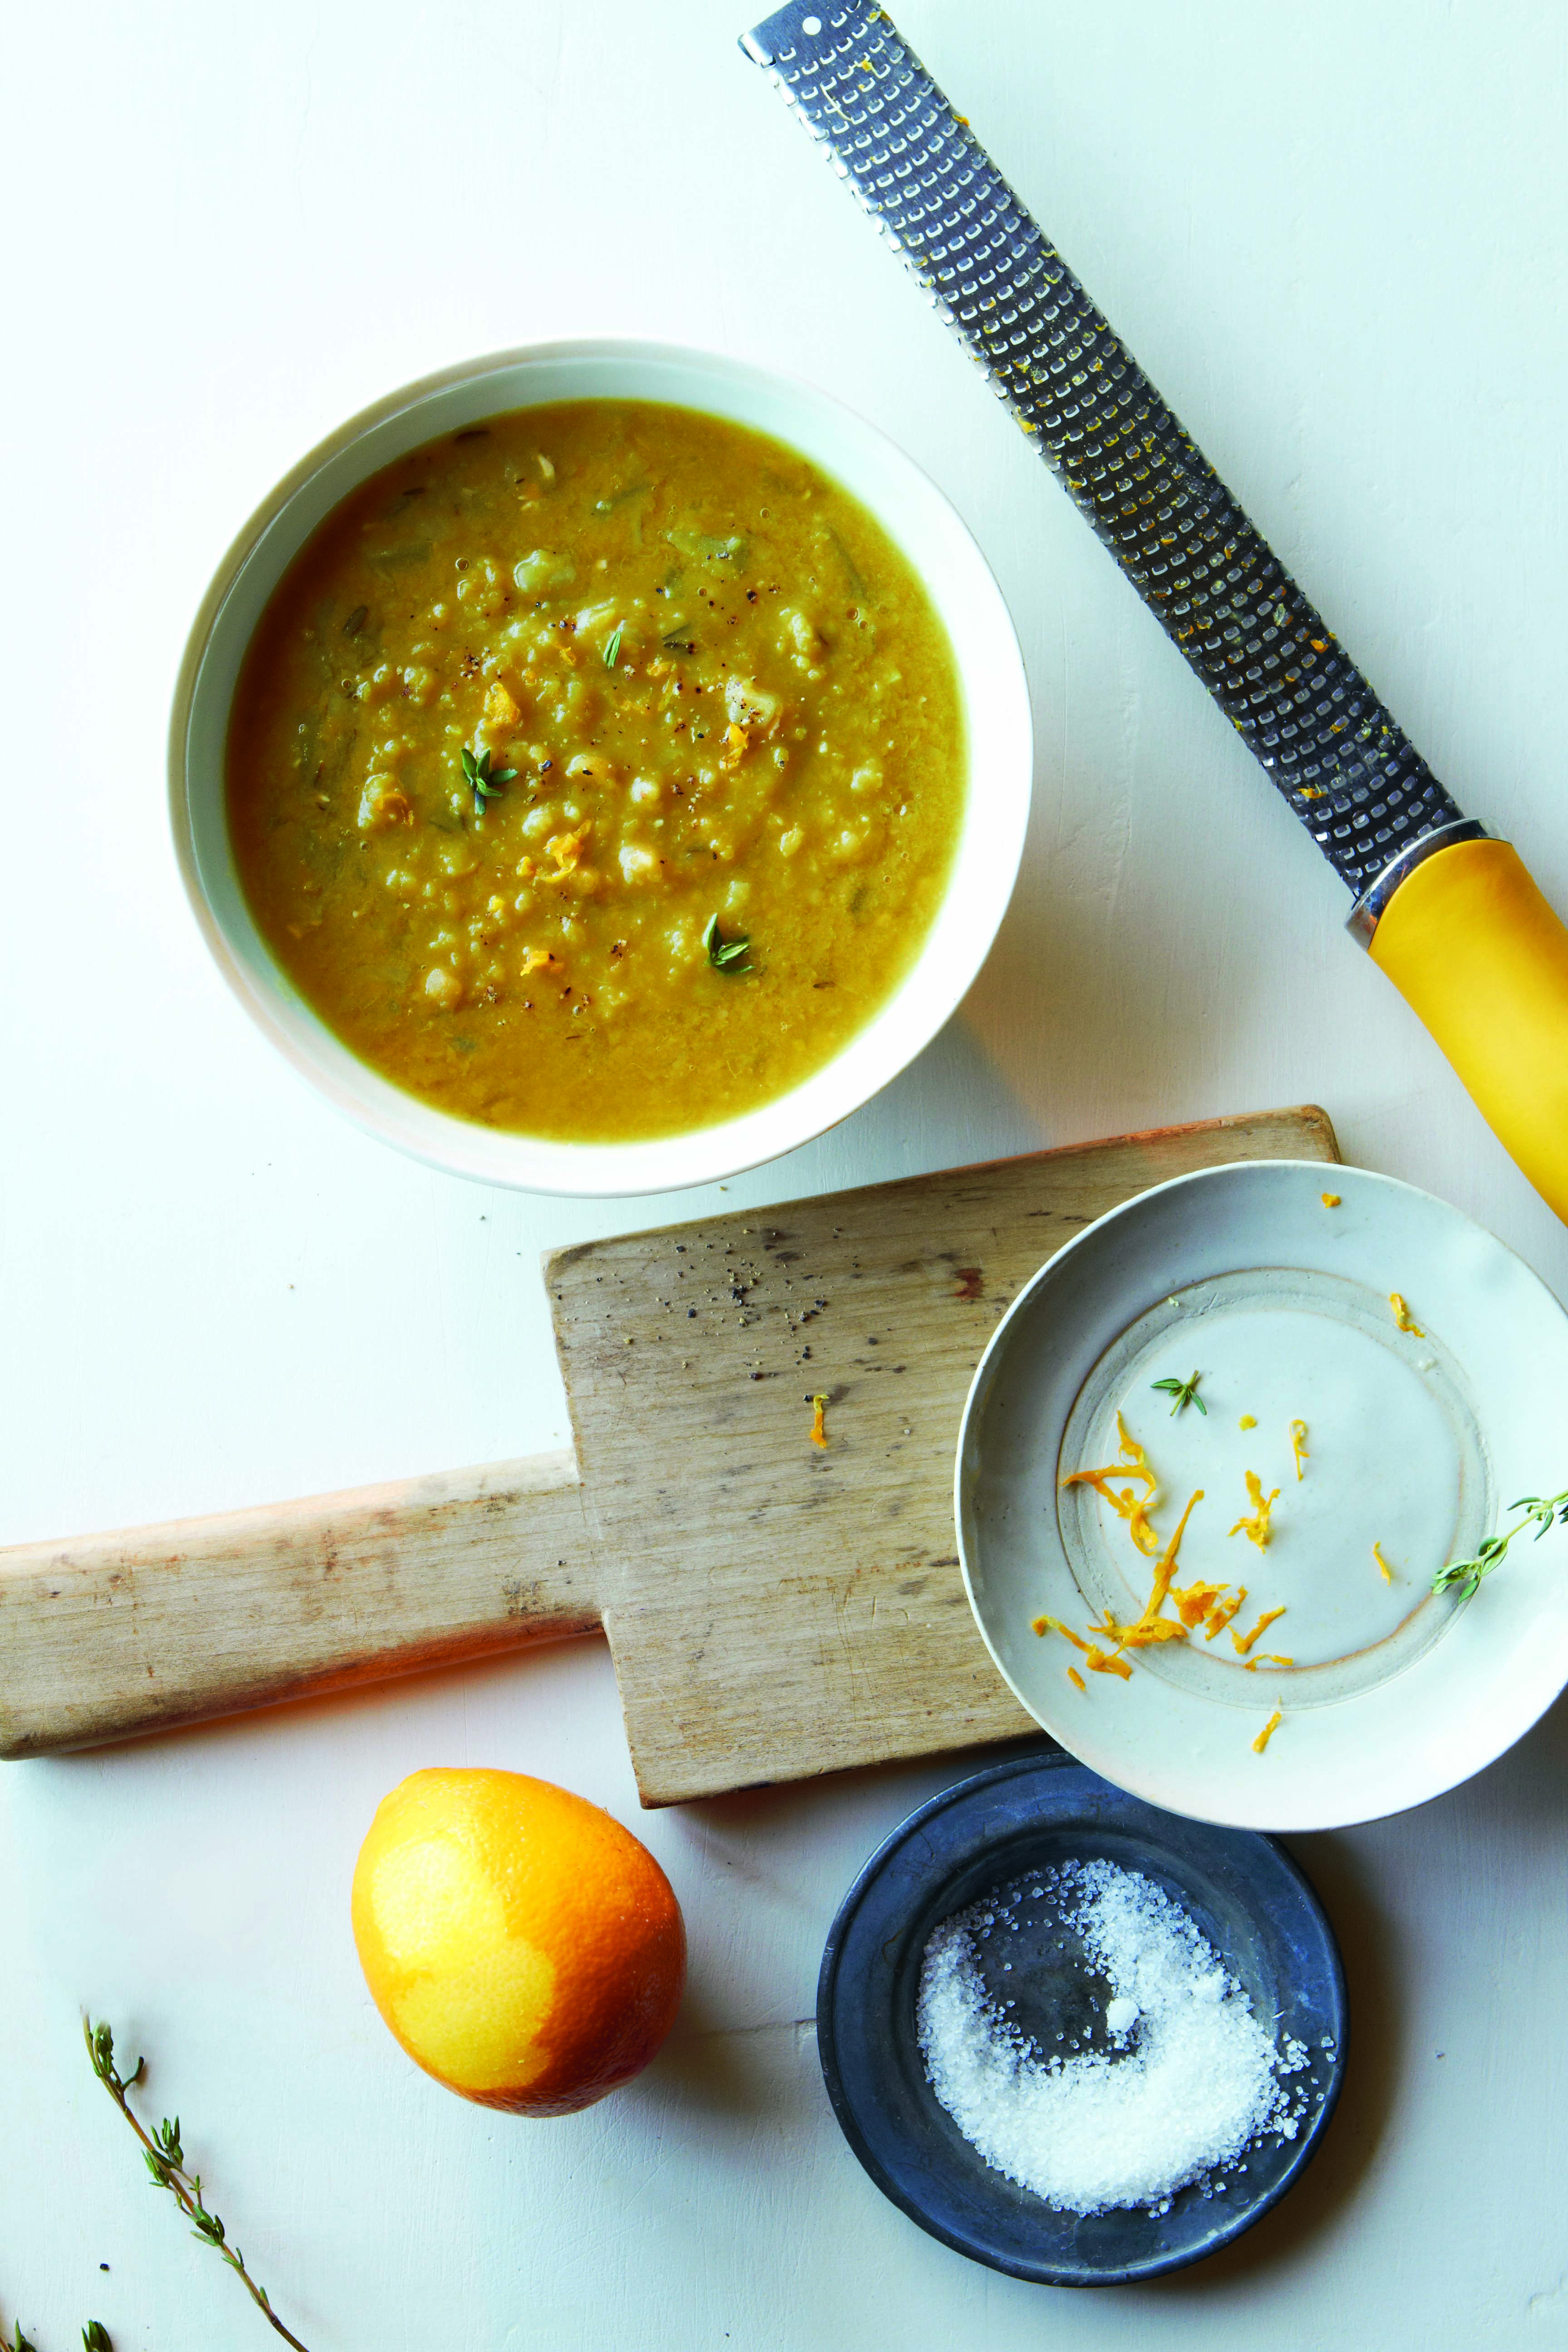 Creamy Split Pea Soup with Meyer Lemon Zest and Thyme